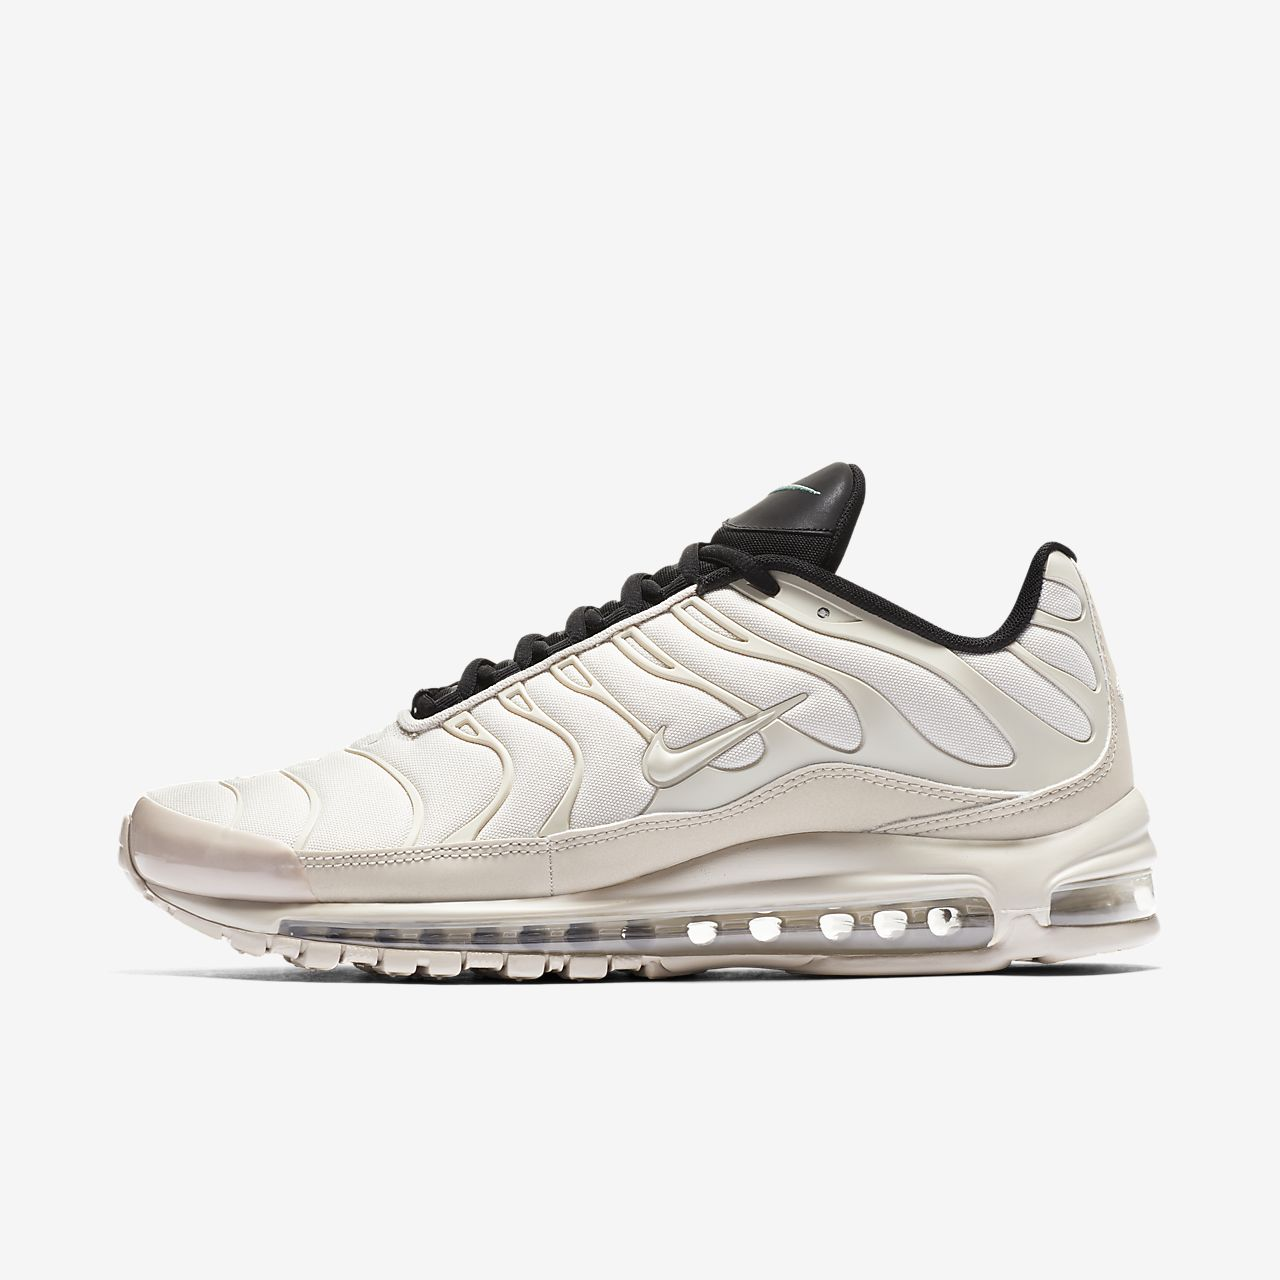 1b0ab204f2a Nike Air Max 97 Plus Men s Shoe. Nike.com CA